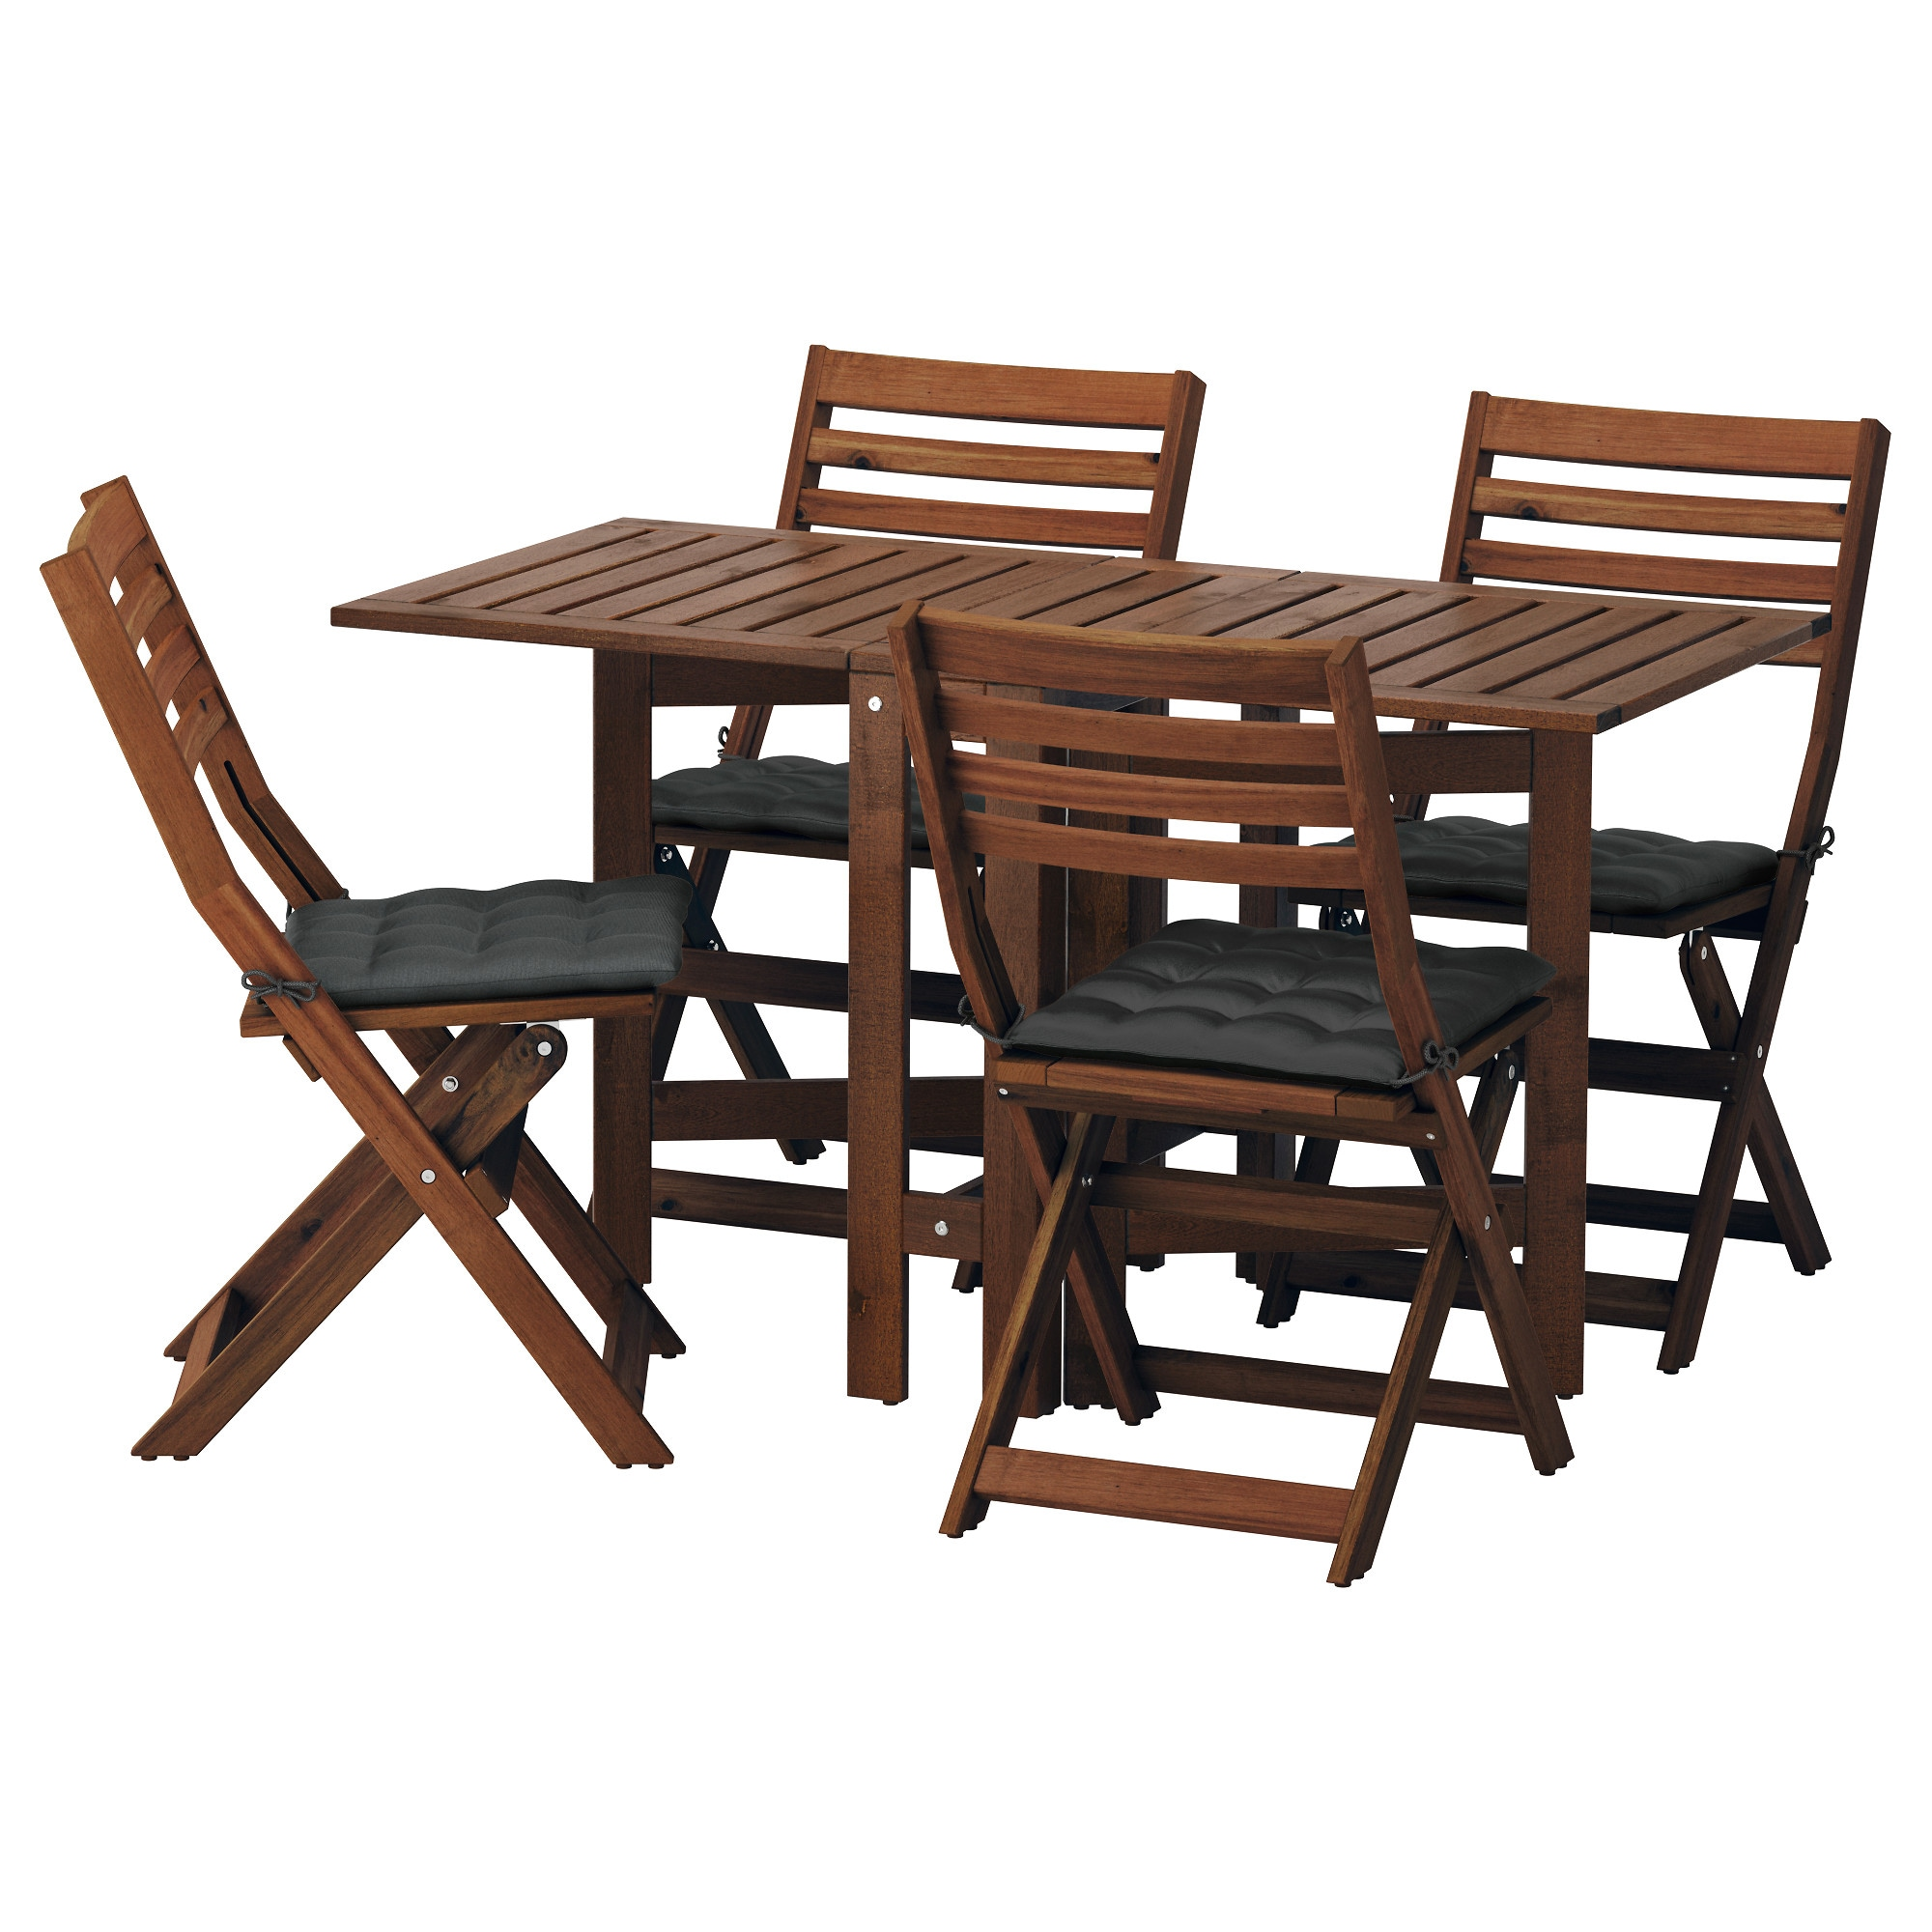 garden table and chair sets india. ÄpplarÖ table and 4 folding chairs, outdoor - Äpplarö brown stained/hållö black ikea garden chair sets india